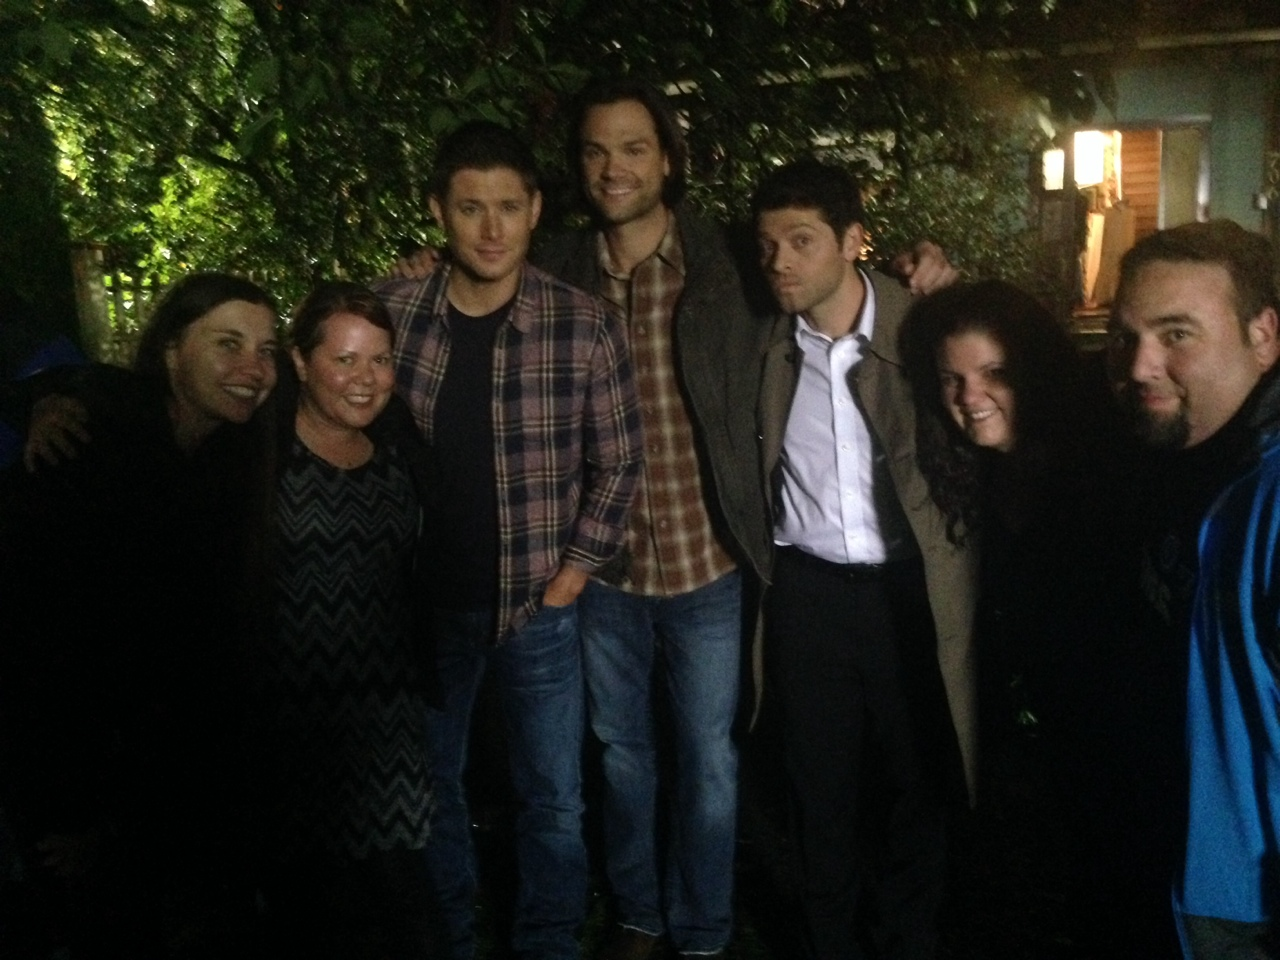 SUPERNATURAL PICTURES 2014年10月